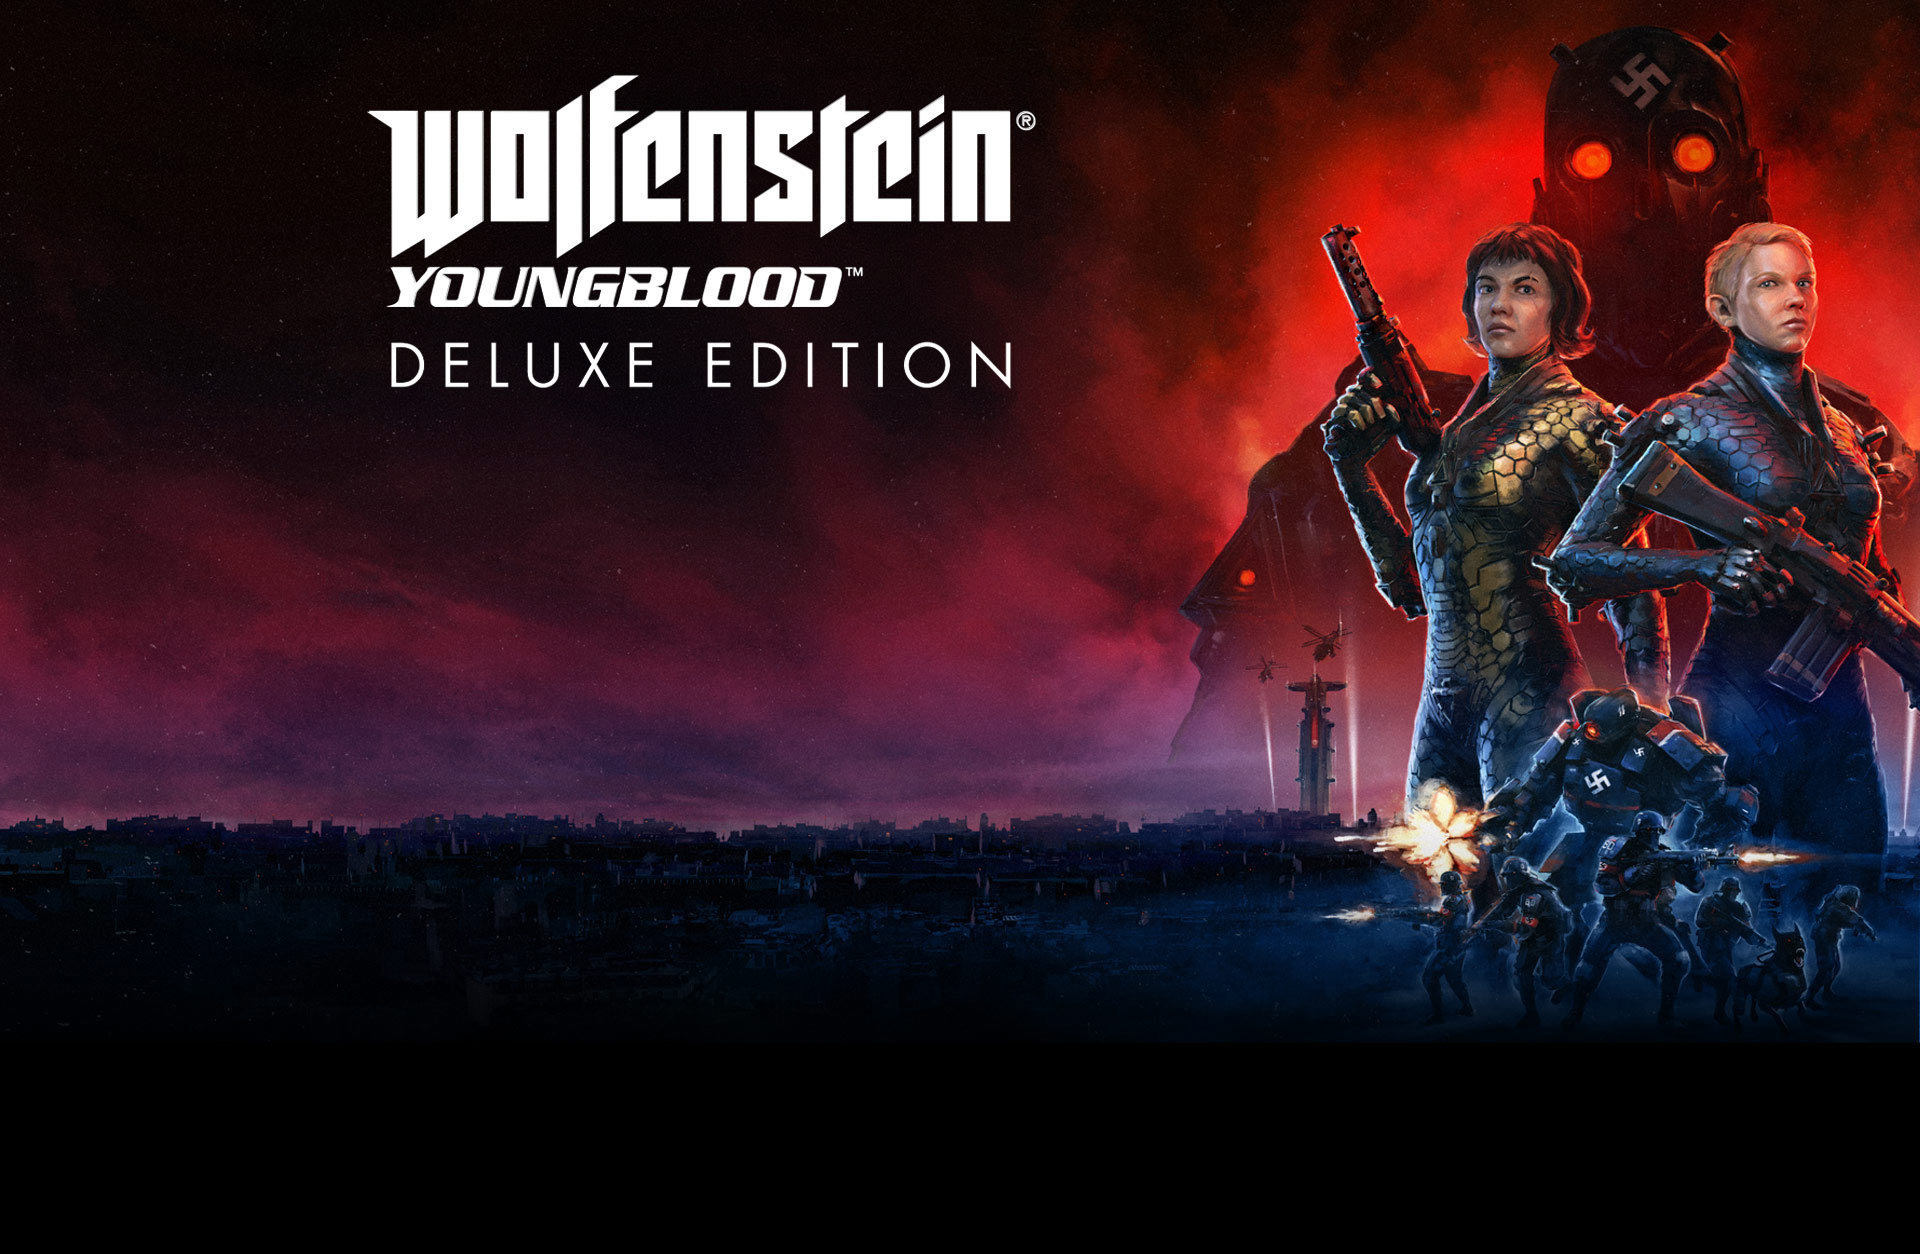 Wolfenstein: Young Blood Deluxe